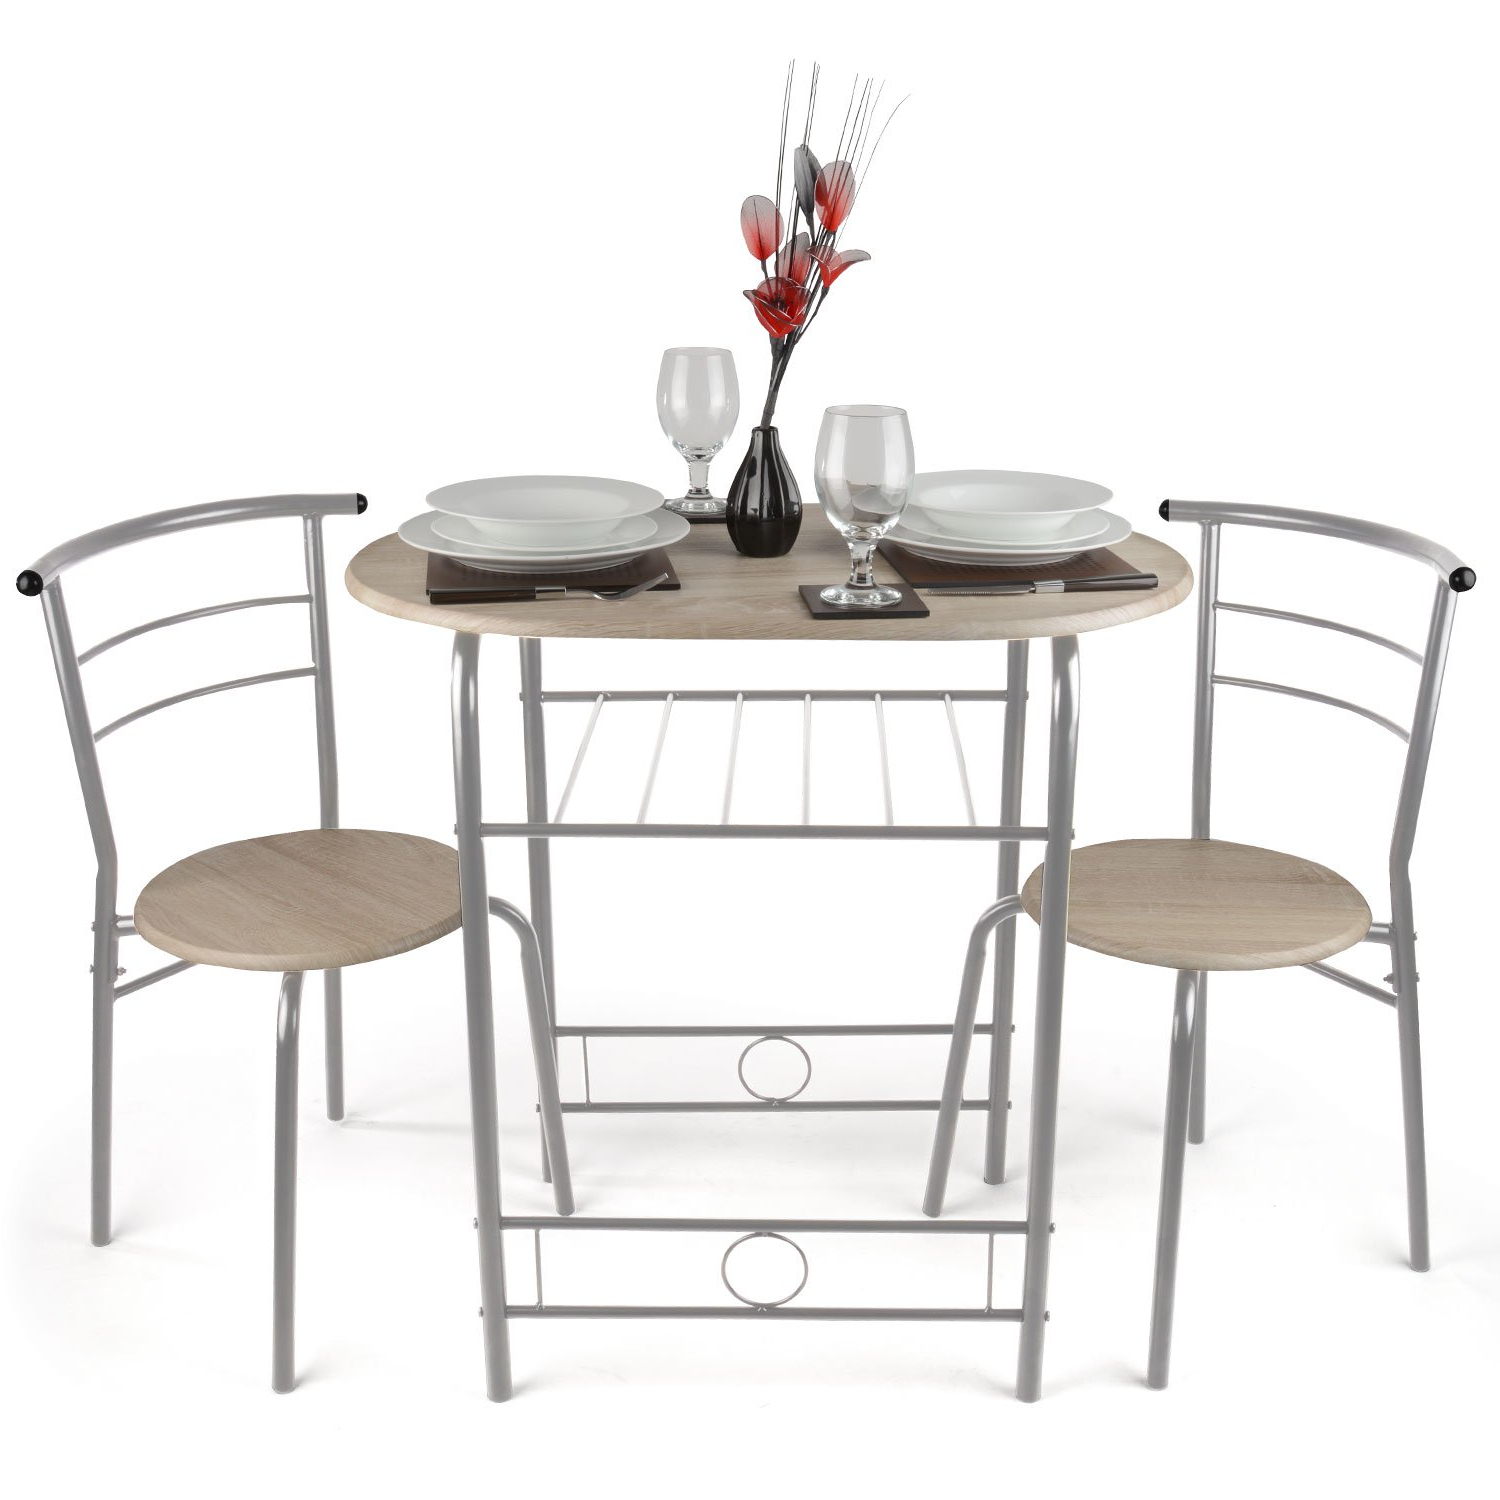 3 Piece Dining Set Breakfast Bar Kitchen Table Chairs 3 Kitchen For Famous 3 Piece Breakfast Dining Sets (View 8 of 20)